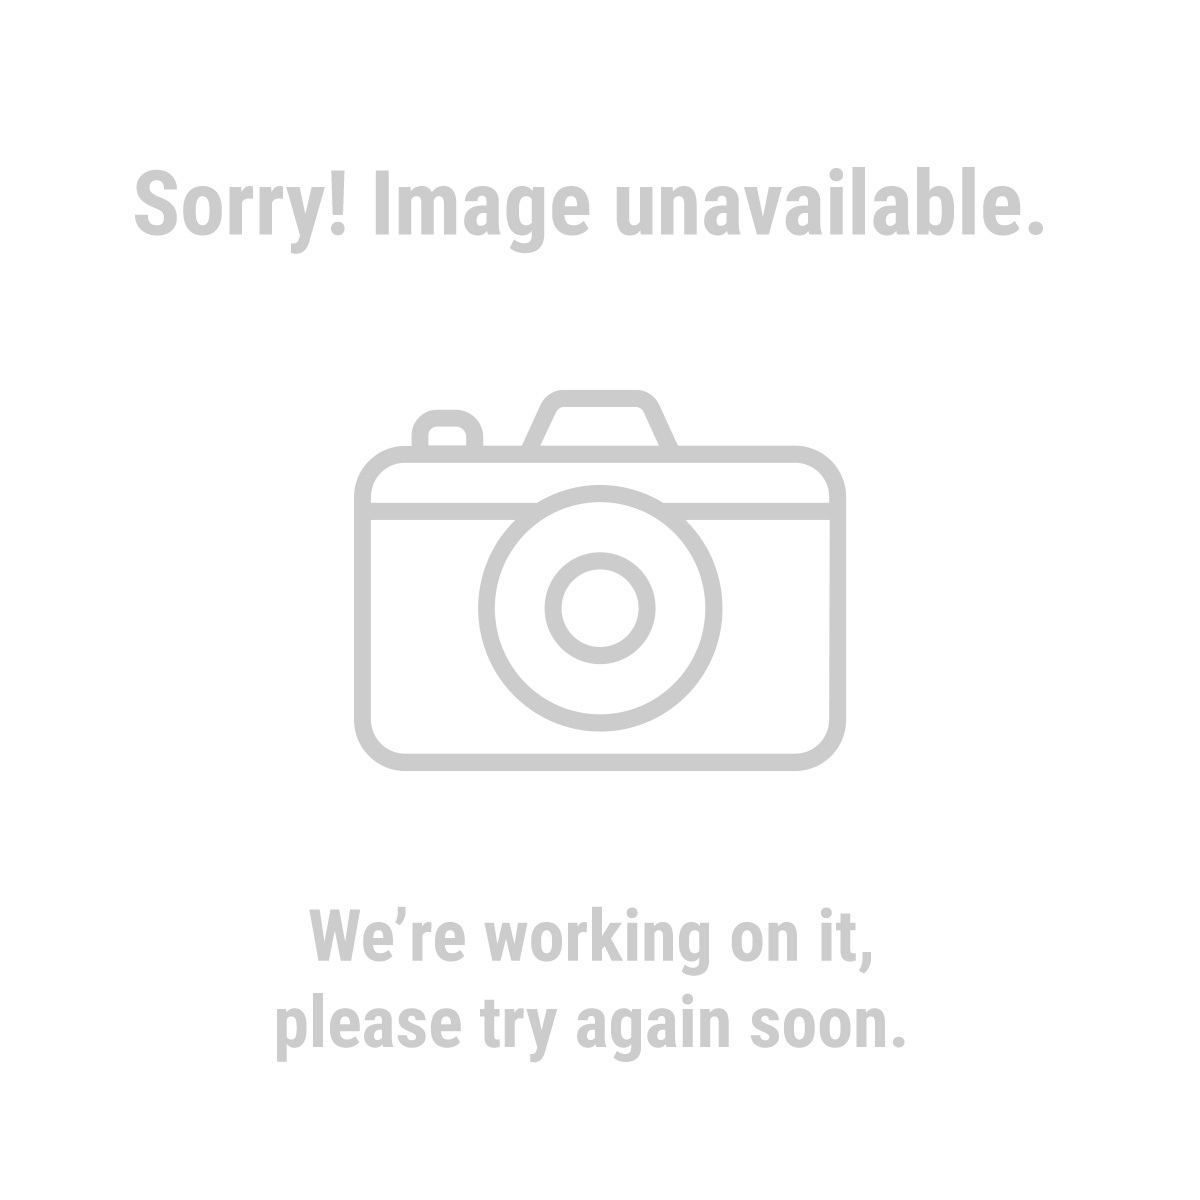 Haul-Master 99891 25 Ft. Round Stretch Cord with Adjustable Hooks